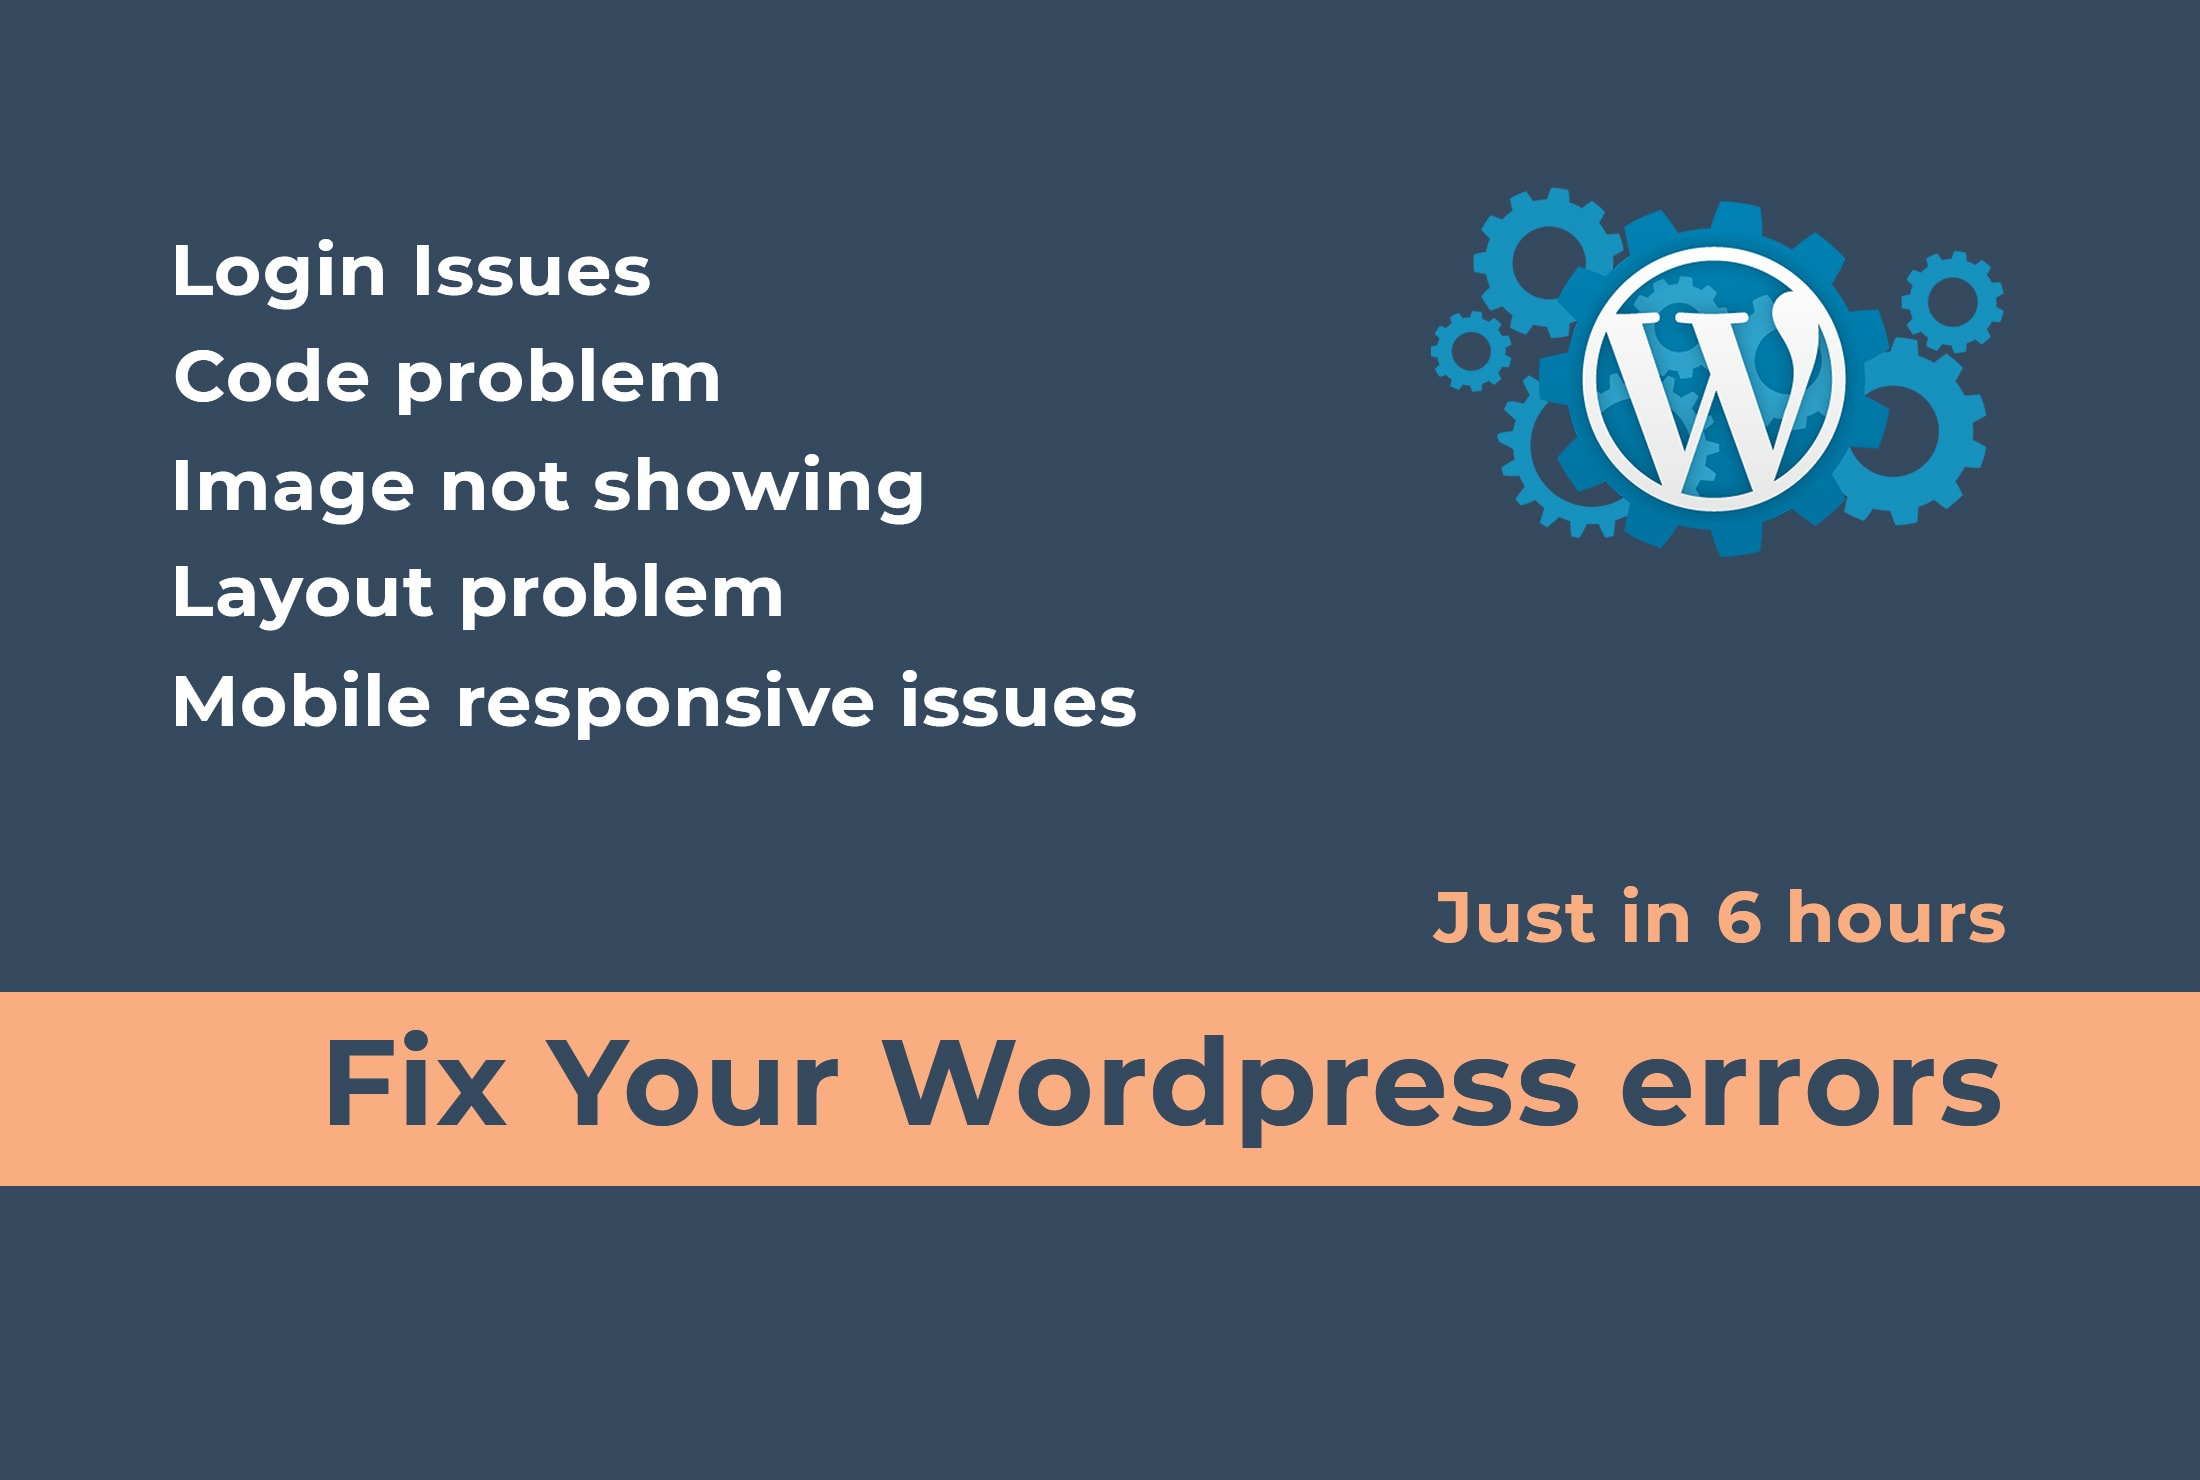 I will fix wordpress errors in 6 hrs